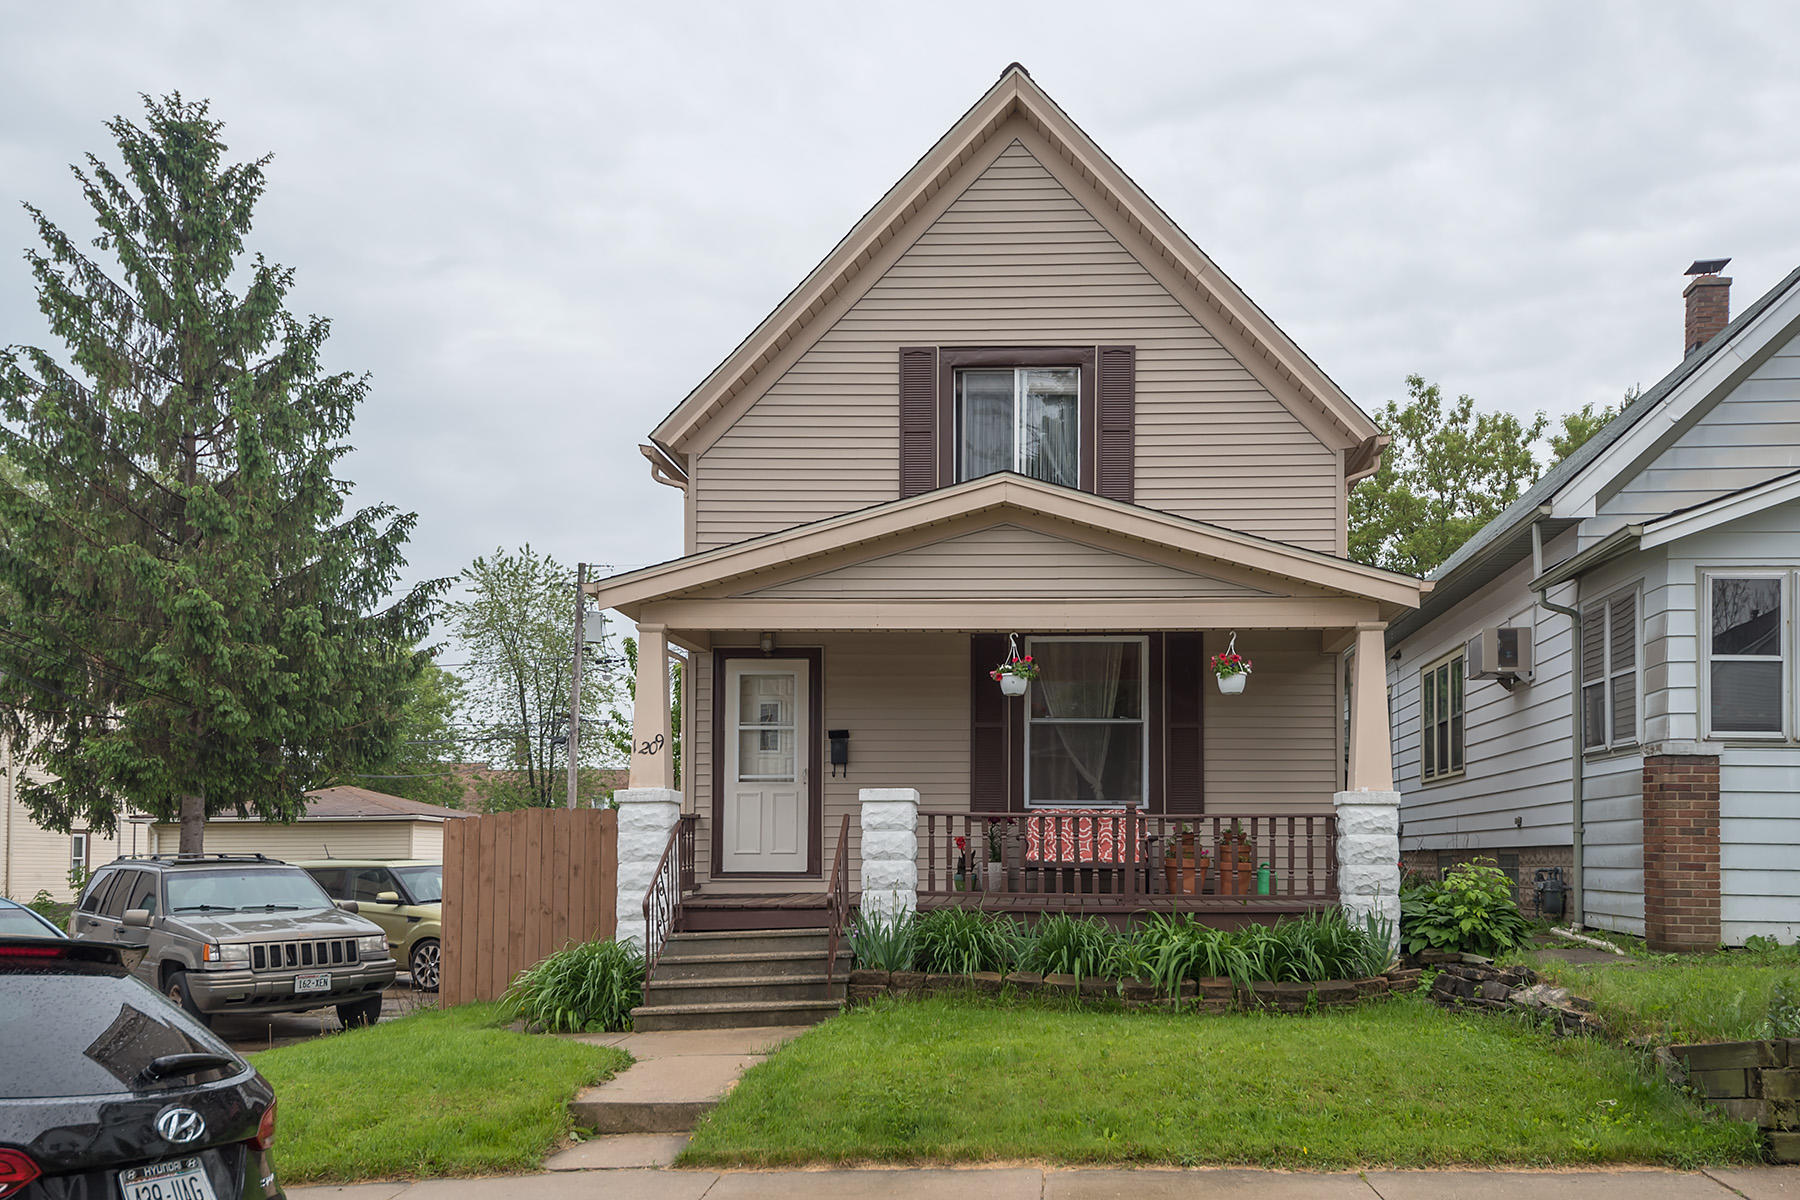 1209 Michigan Ave, South Milwaukee, Wisconsin 53172, 2 Bedrooms Bedrooms, 5 Rooms Rooms,1 BathroomBathrooms,Single-Family,For Sale,Michigan Ave,1642495